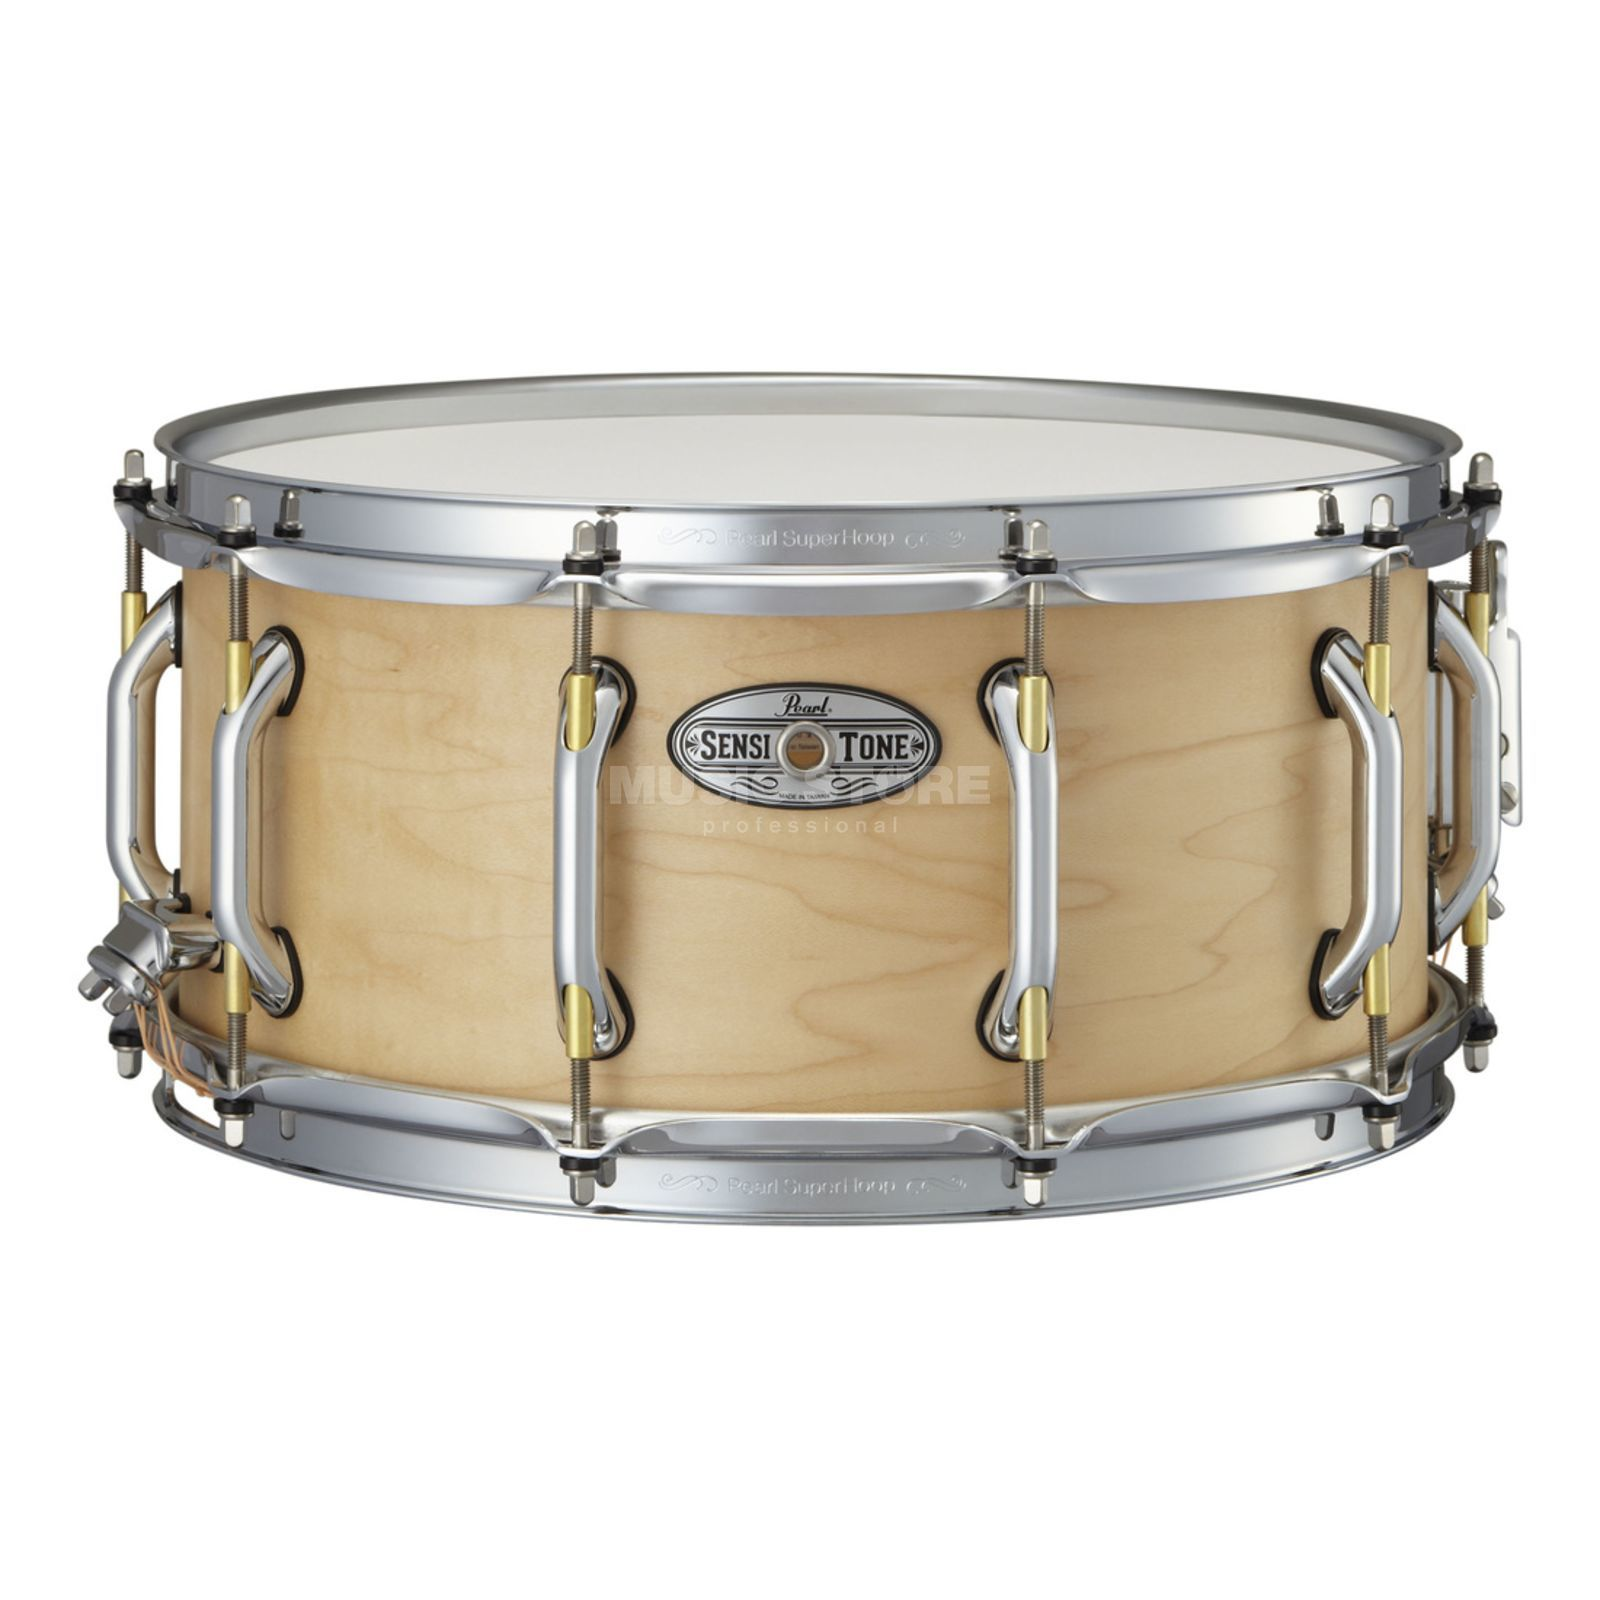 "Pearl Sensitone Premium Snare, 14""x6.5"", STA1465MM, Maple Produktbillede"